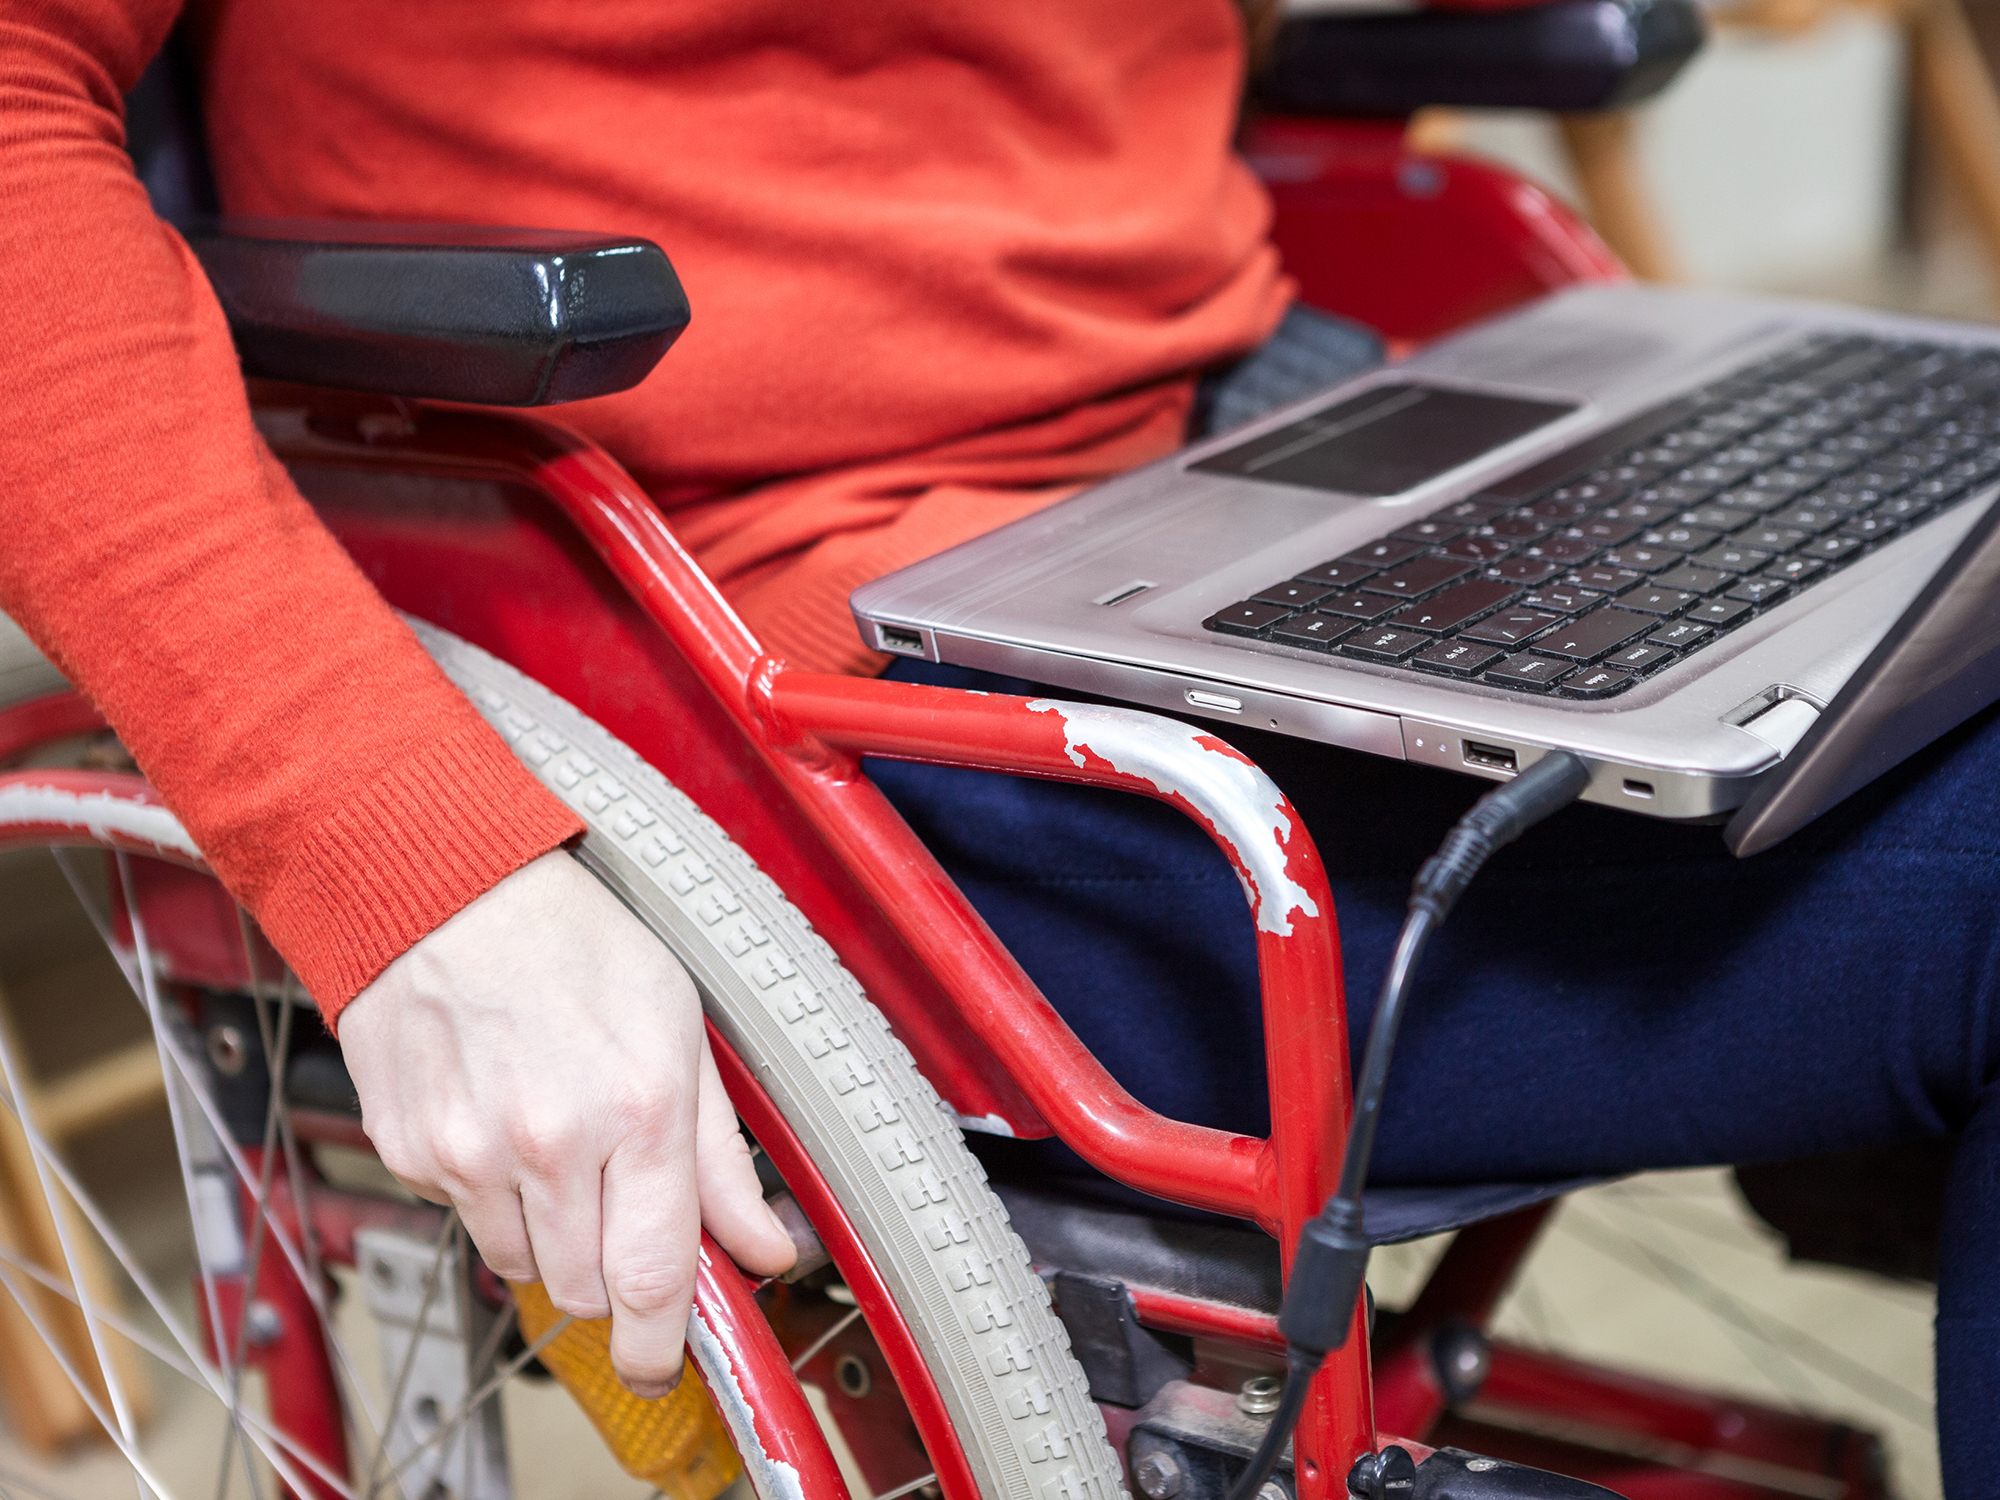 The NDIS funds supports that are are necessary for you to achieve your goals.